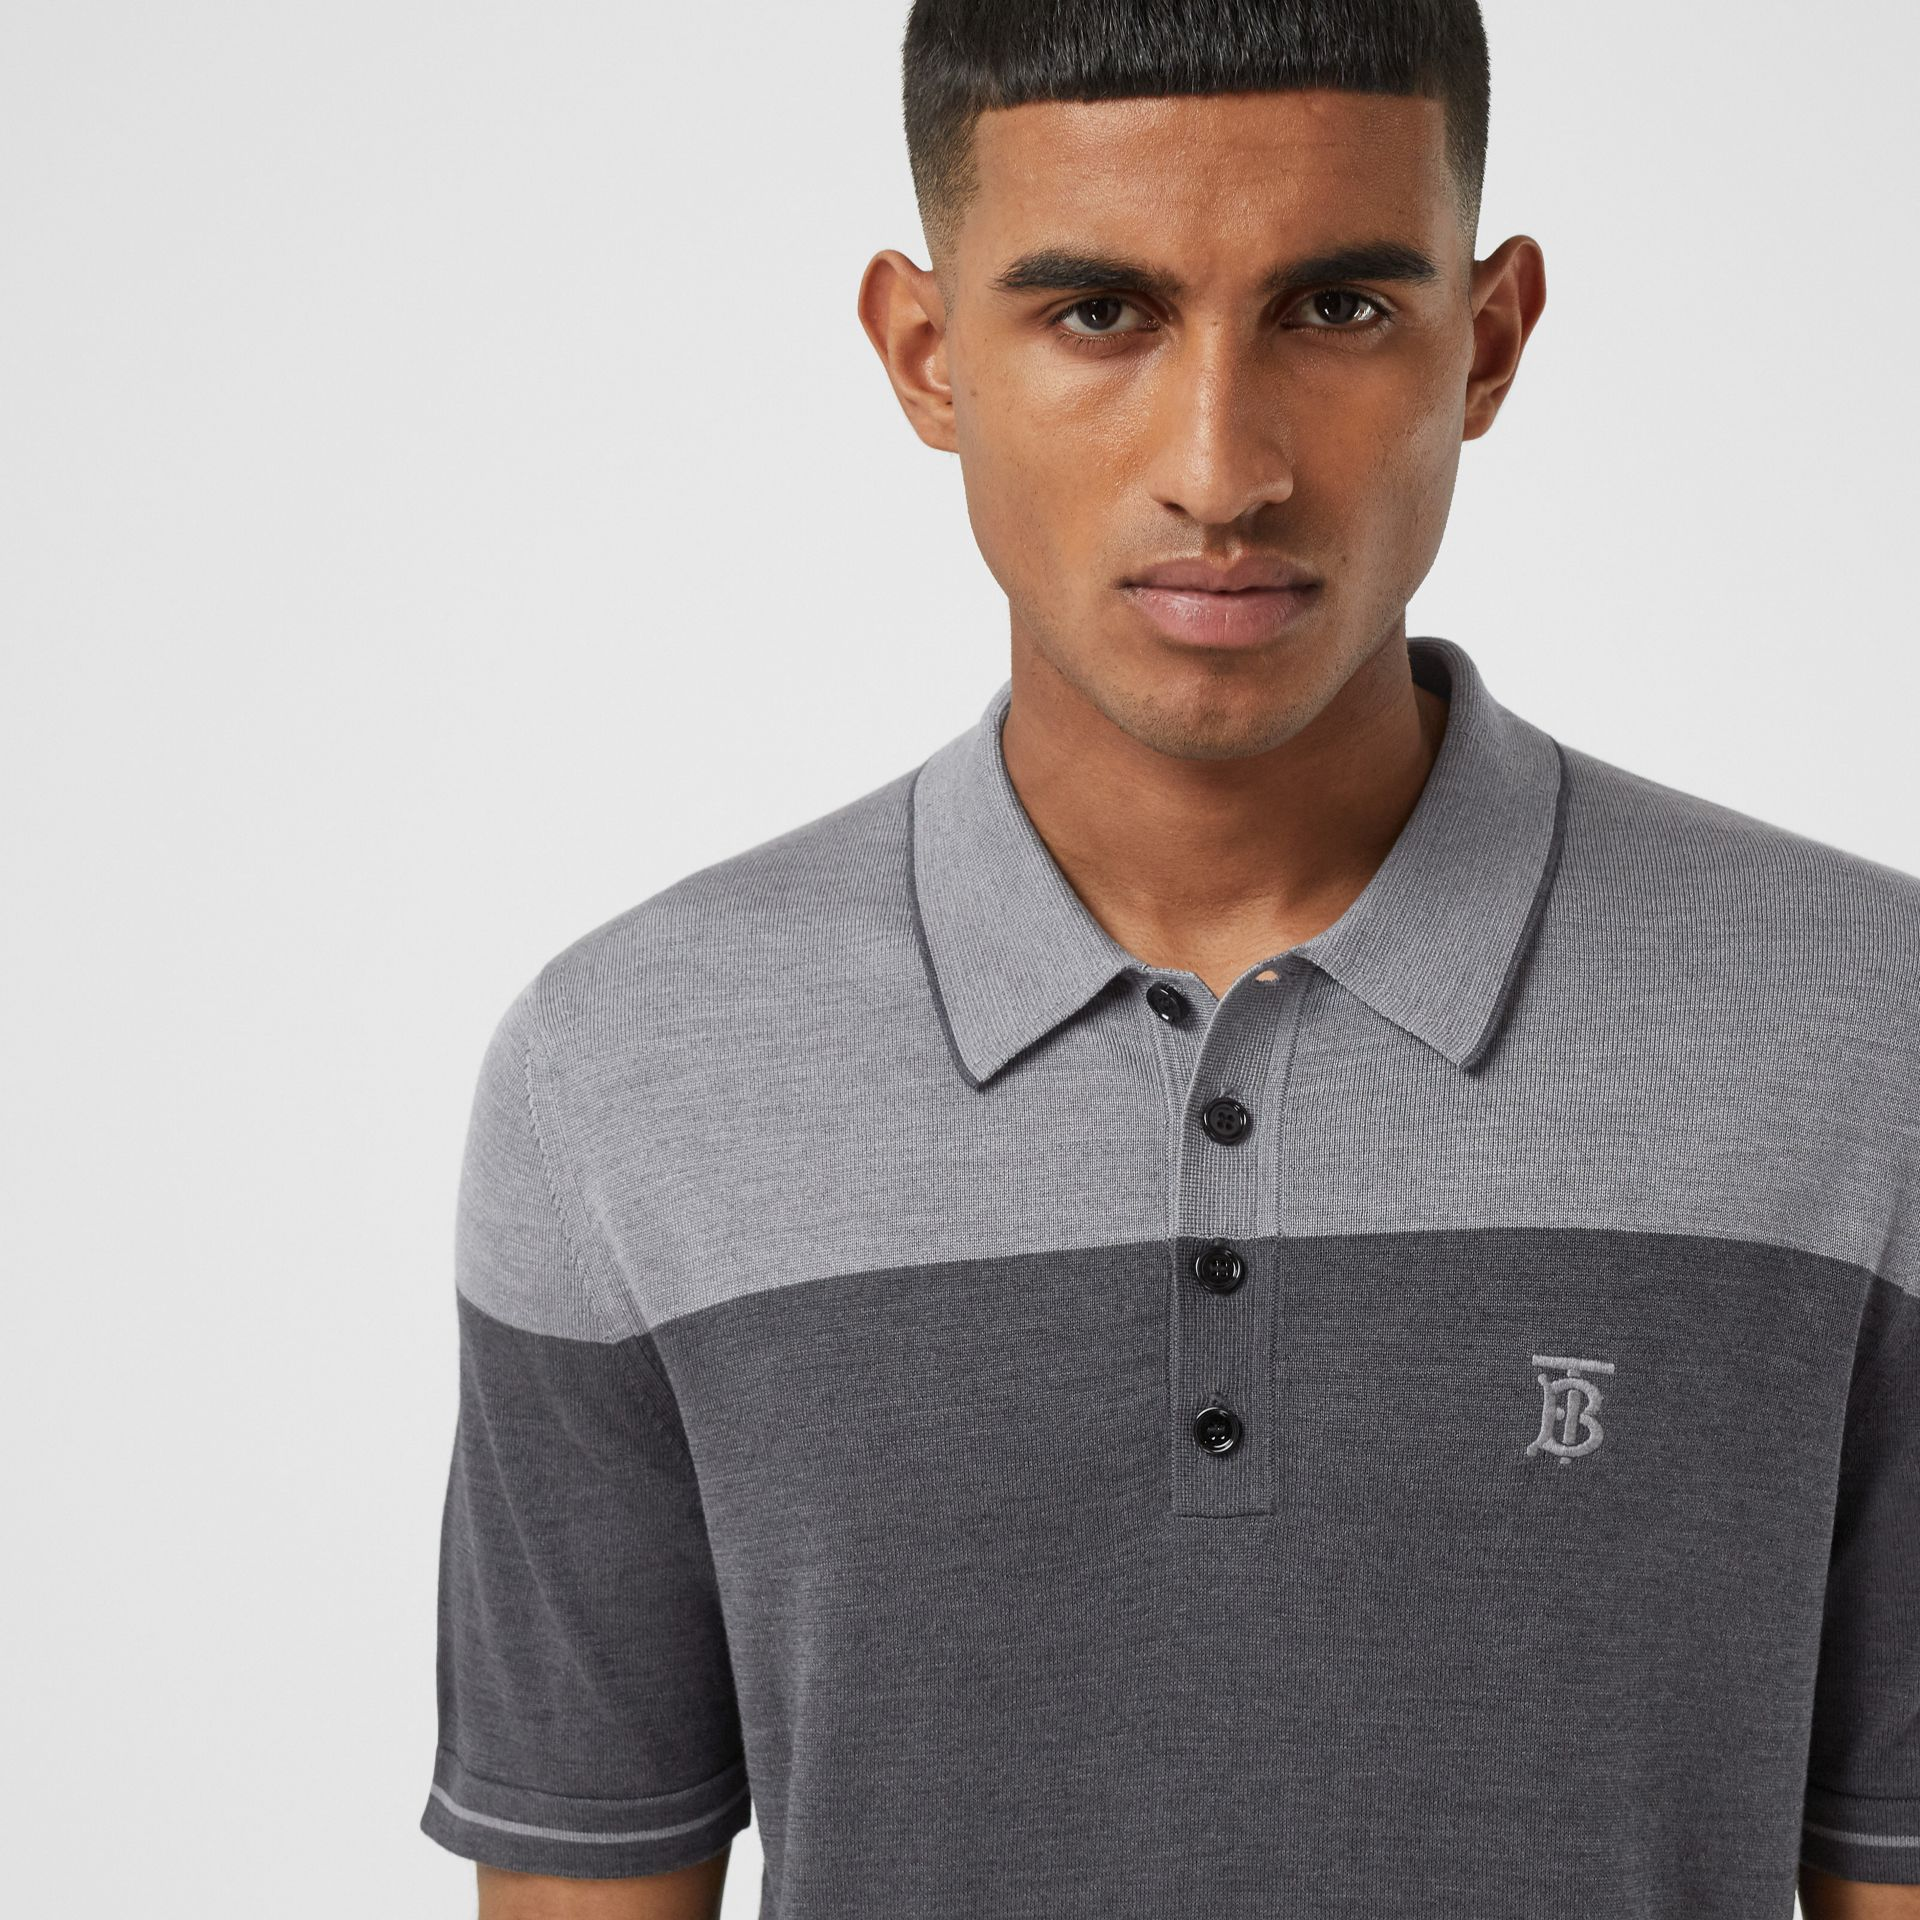 Monogram Motif Two-tone Silk Cashmere Polo Shirt in Charcoal - Men | Burberry - gallery image 1